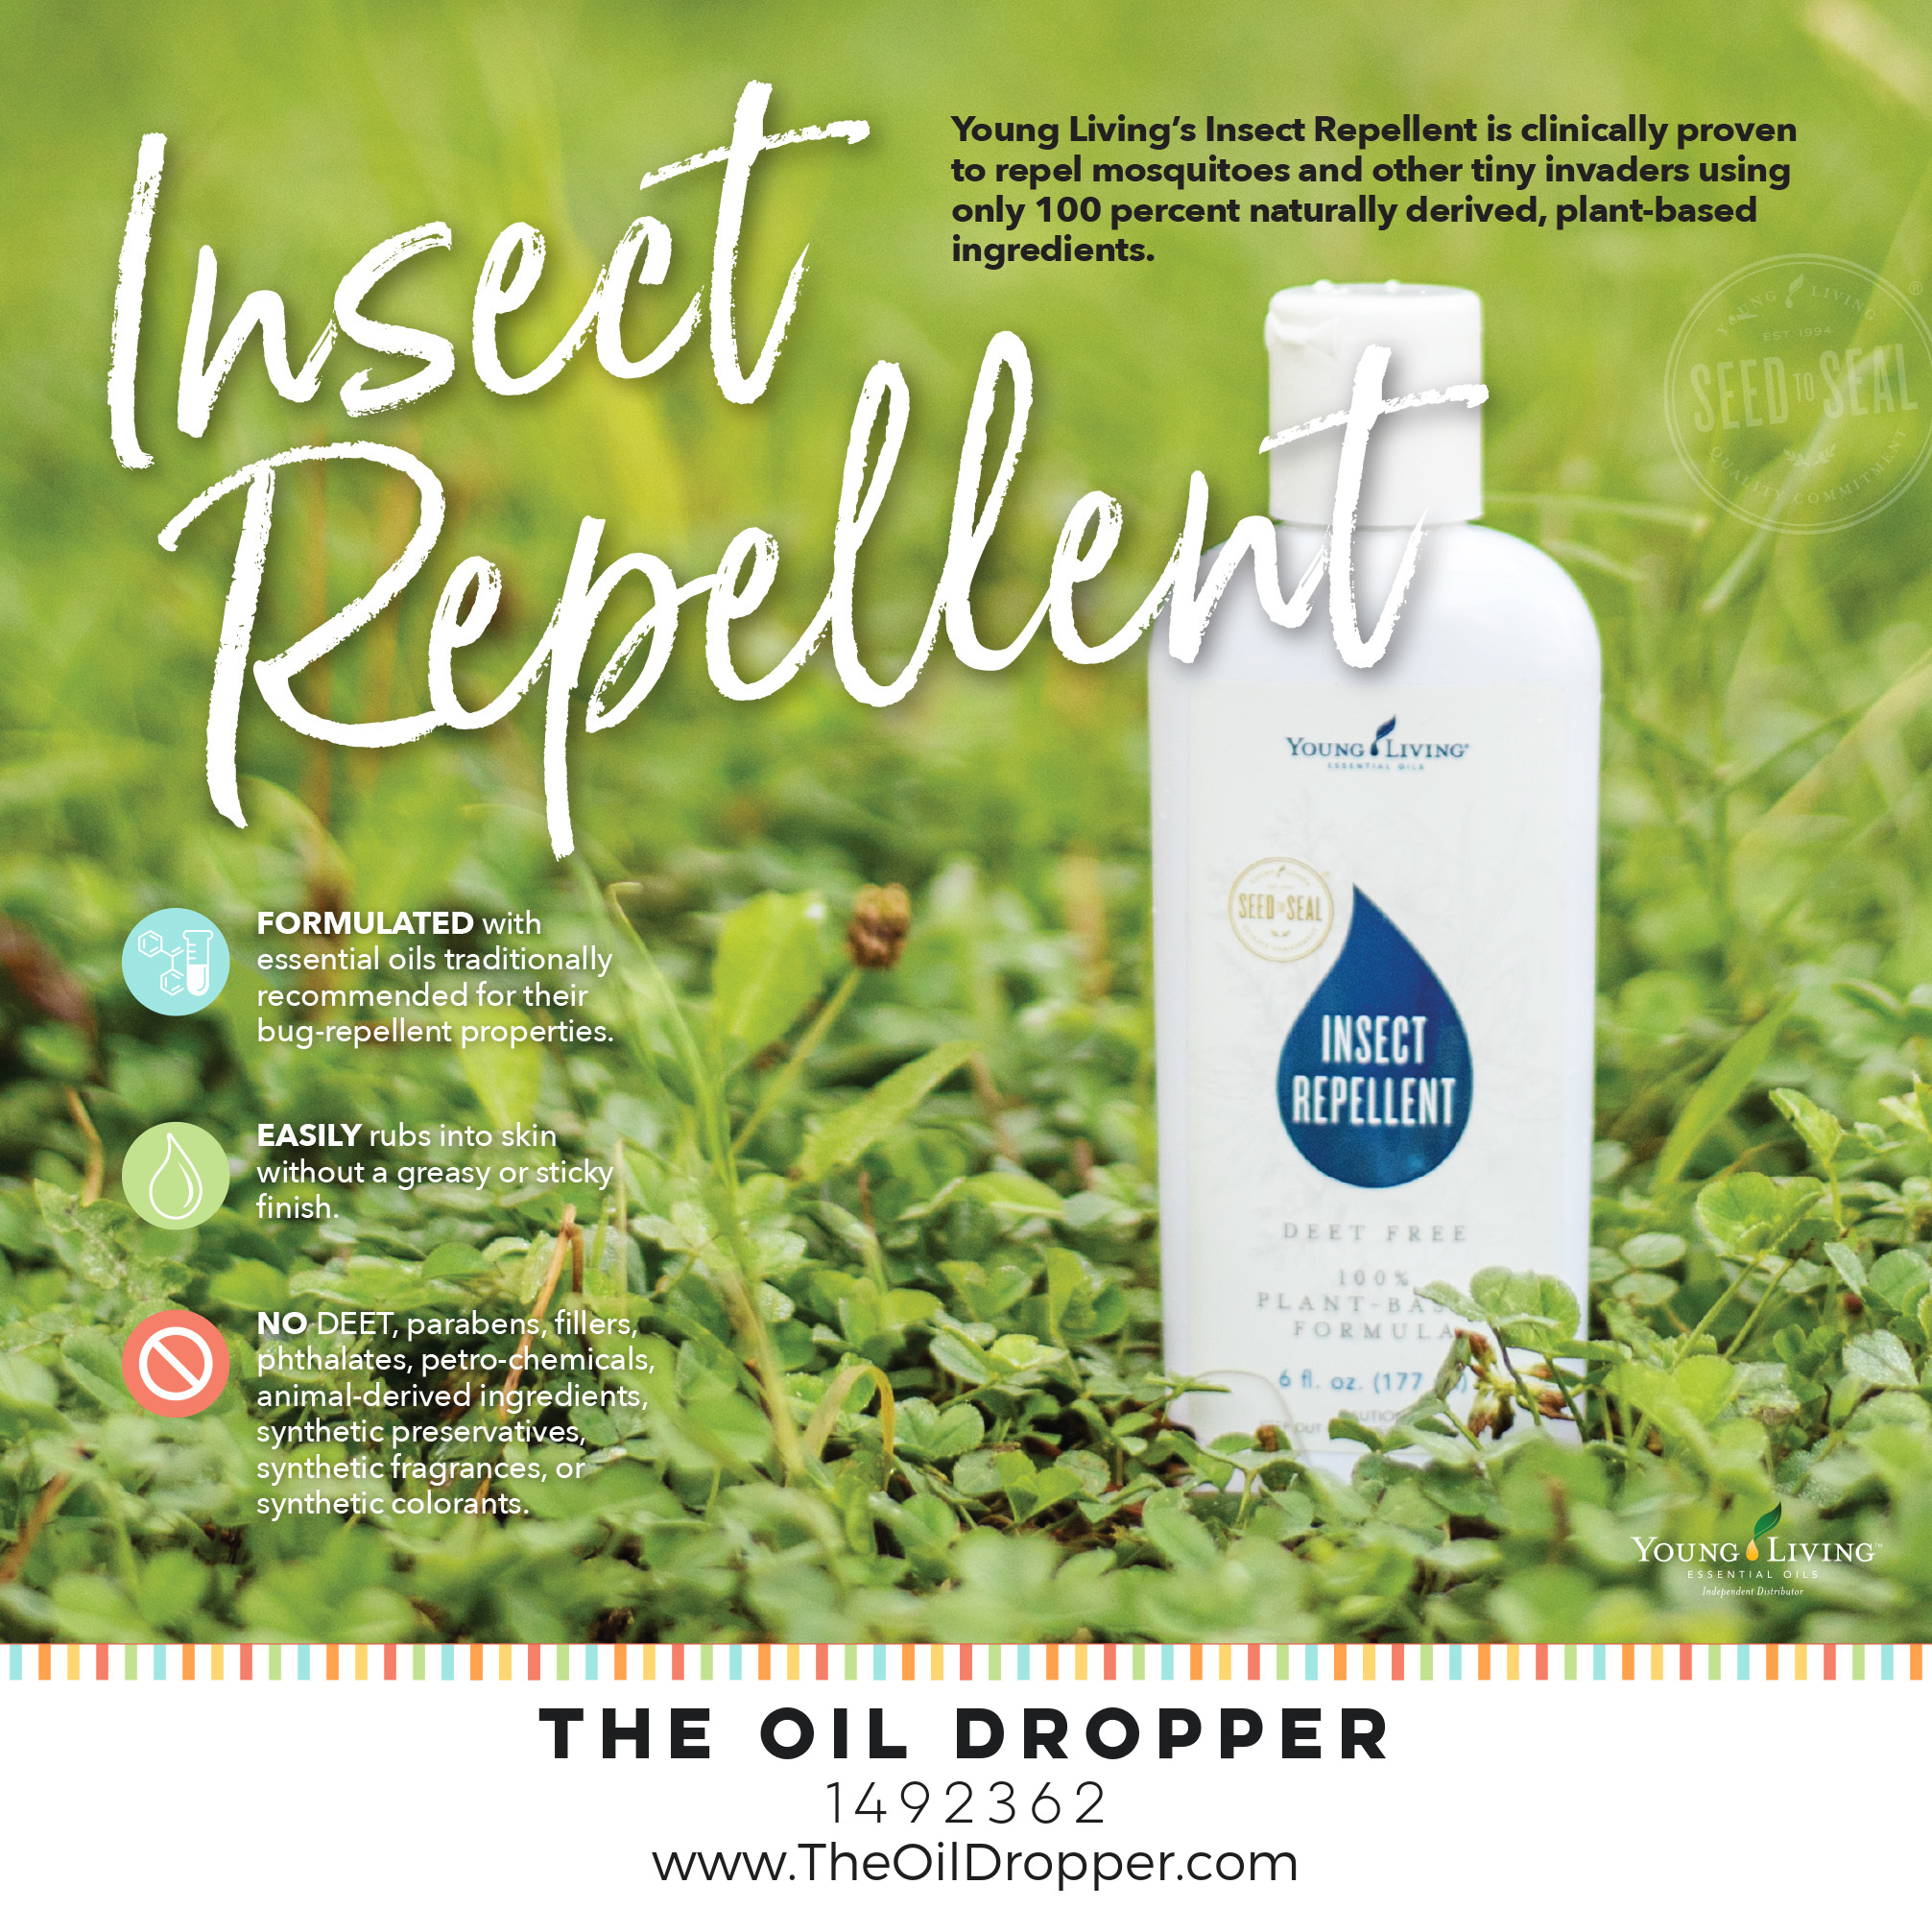 All Natural Insect Repellent The Oil Dropper